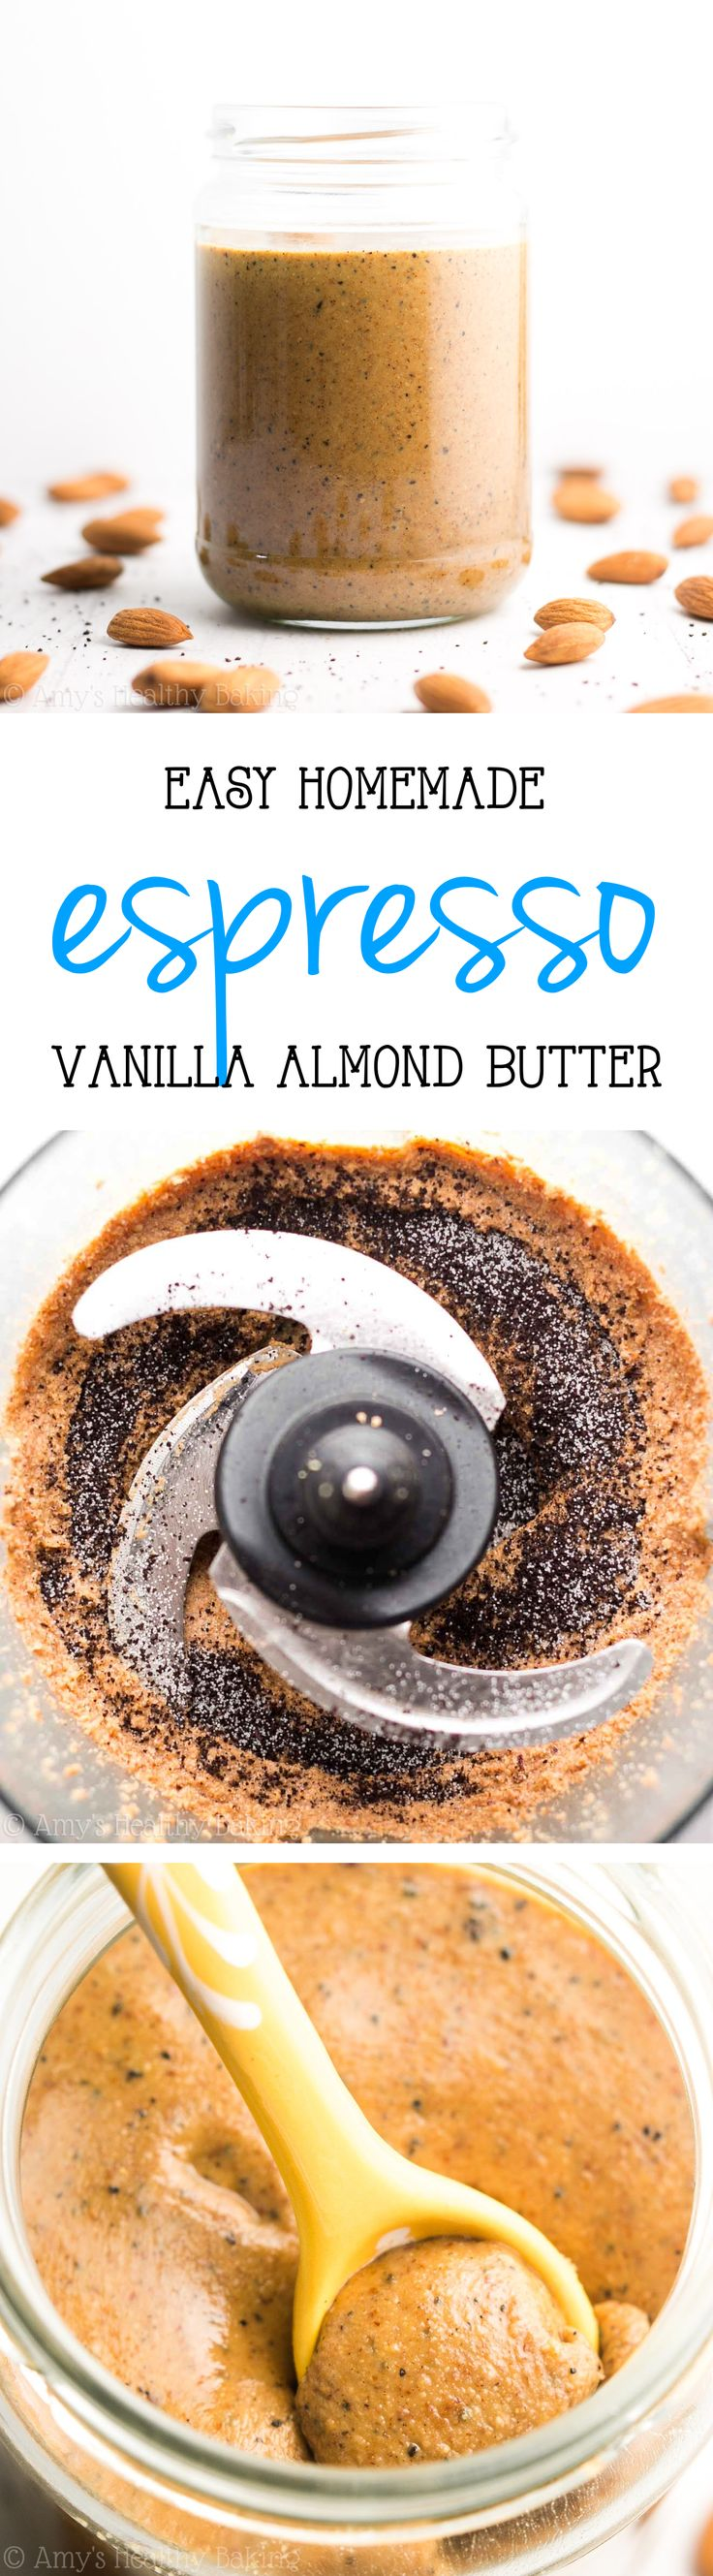 Homemade Vanilla Espresso Almond Butter Recipe -- you just need 4 ingredients & 10 minutes! So easy & half the price of store-bought!